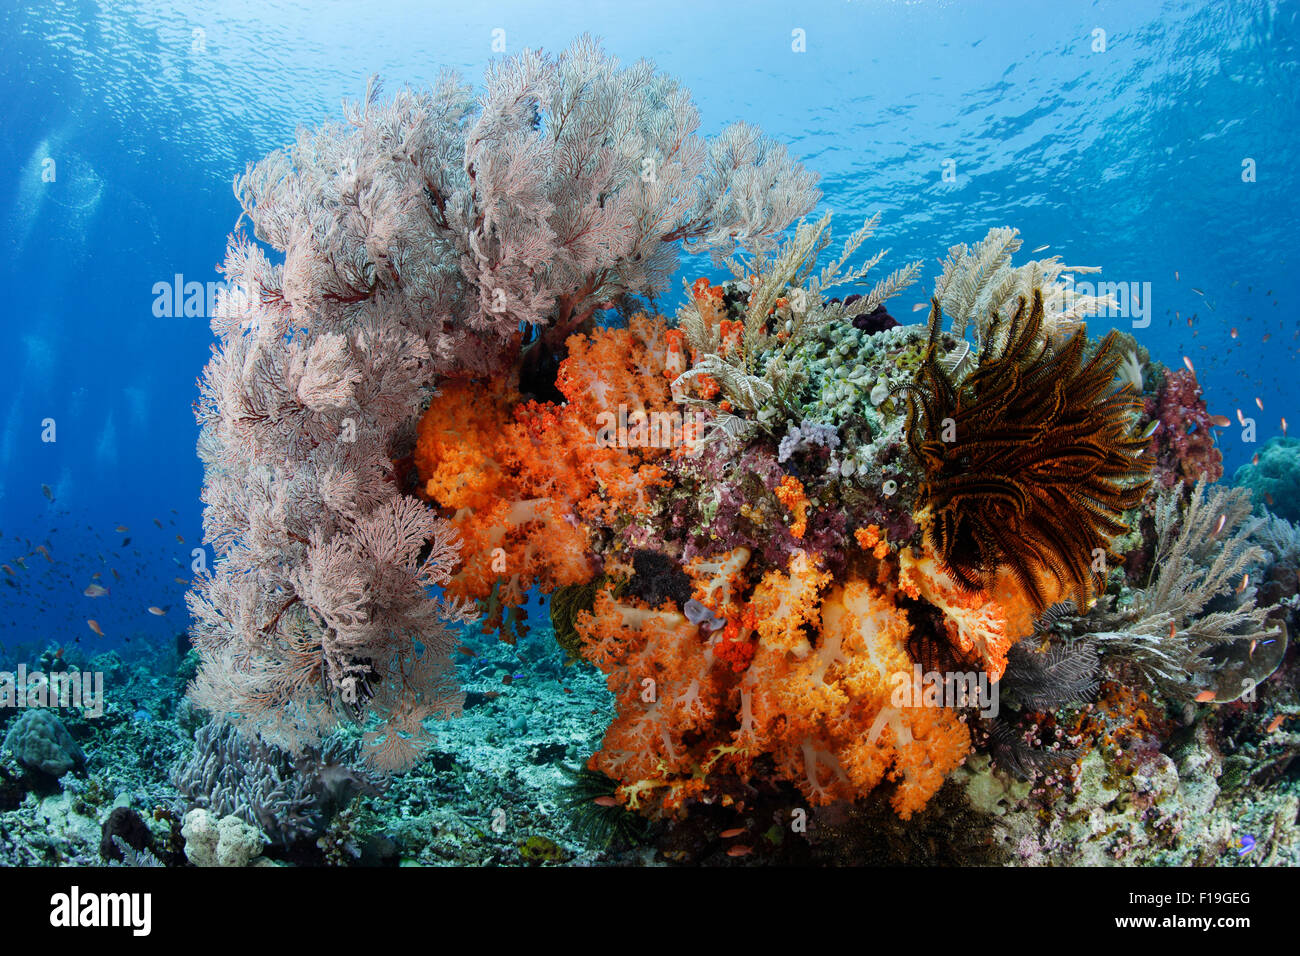 px0186-D. colorful bommie on top of reef, draped in soft corals, sea fans, crinoids, and hydroids. Indonesia, tropical - Stock Image